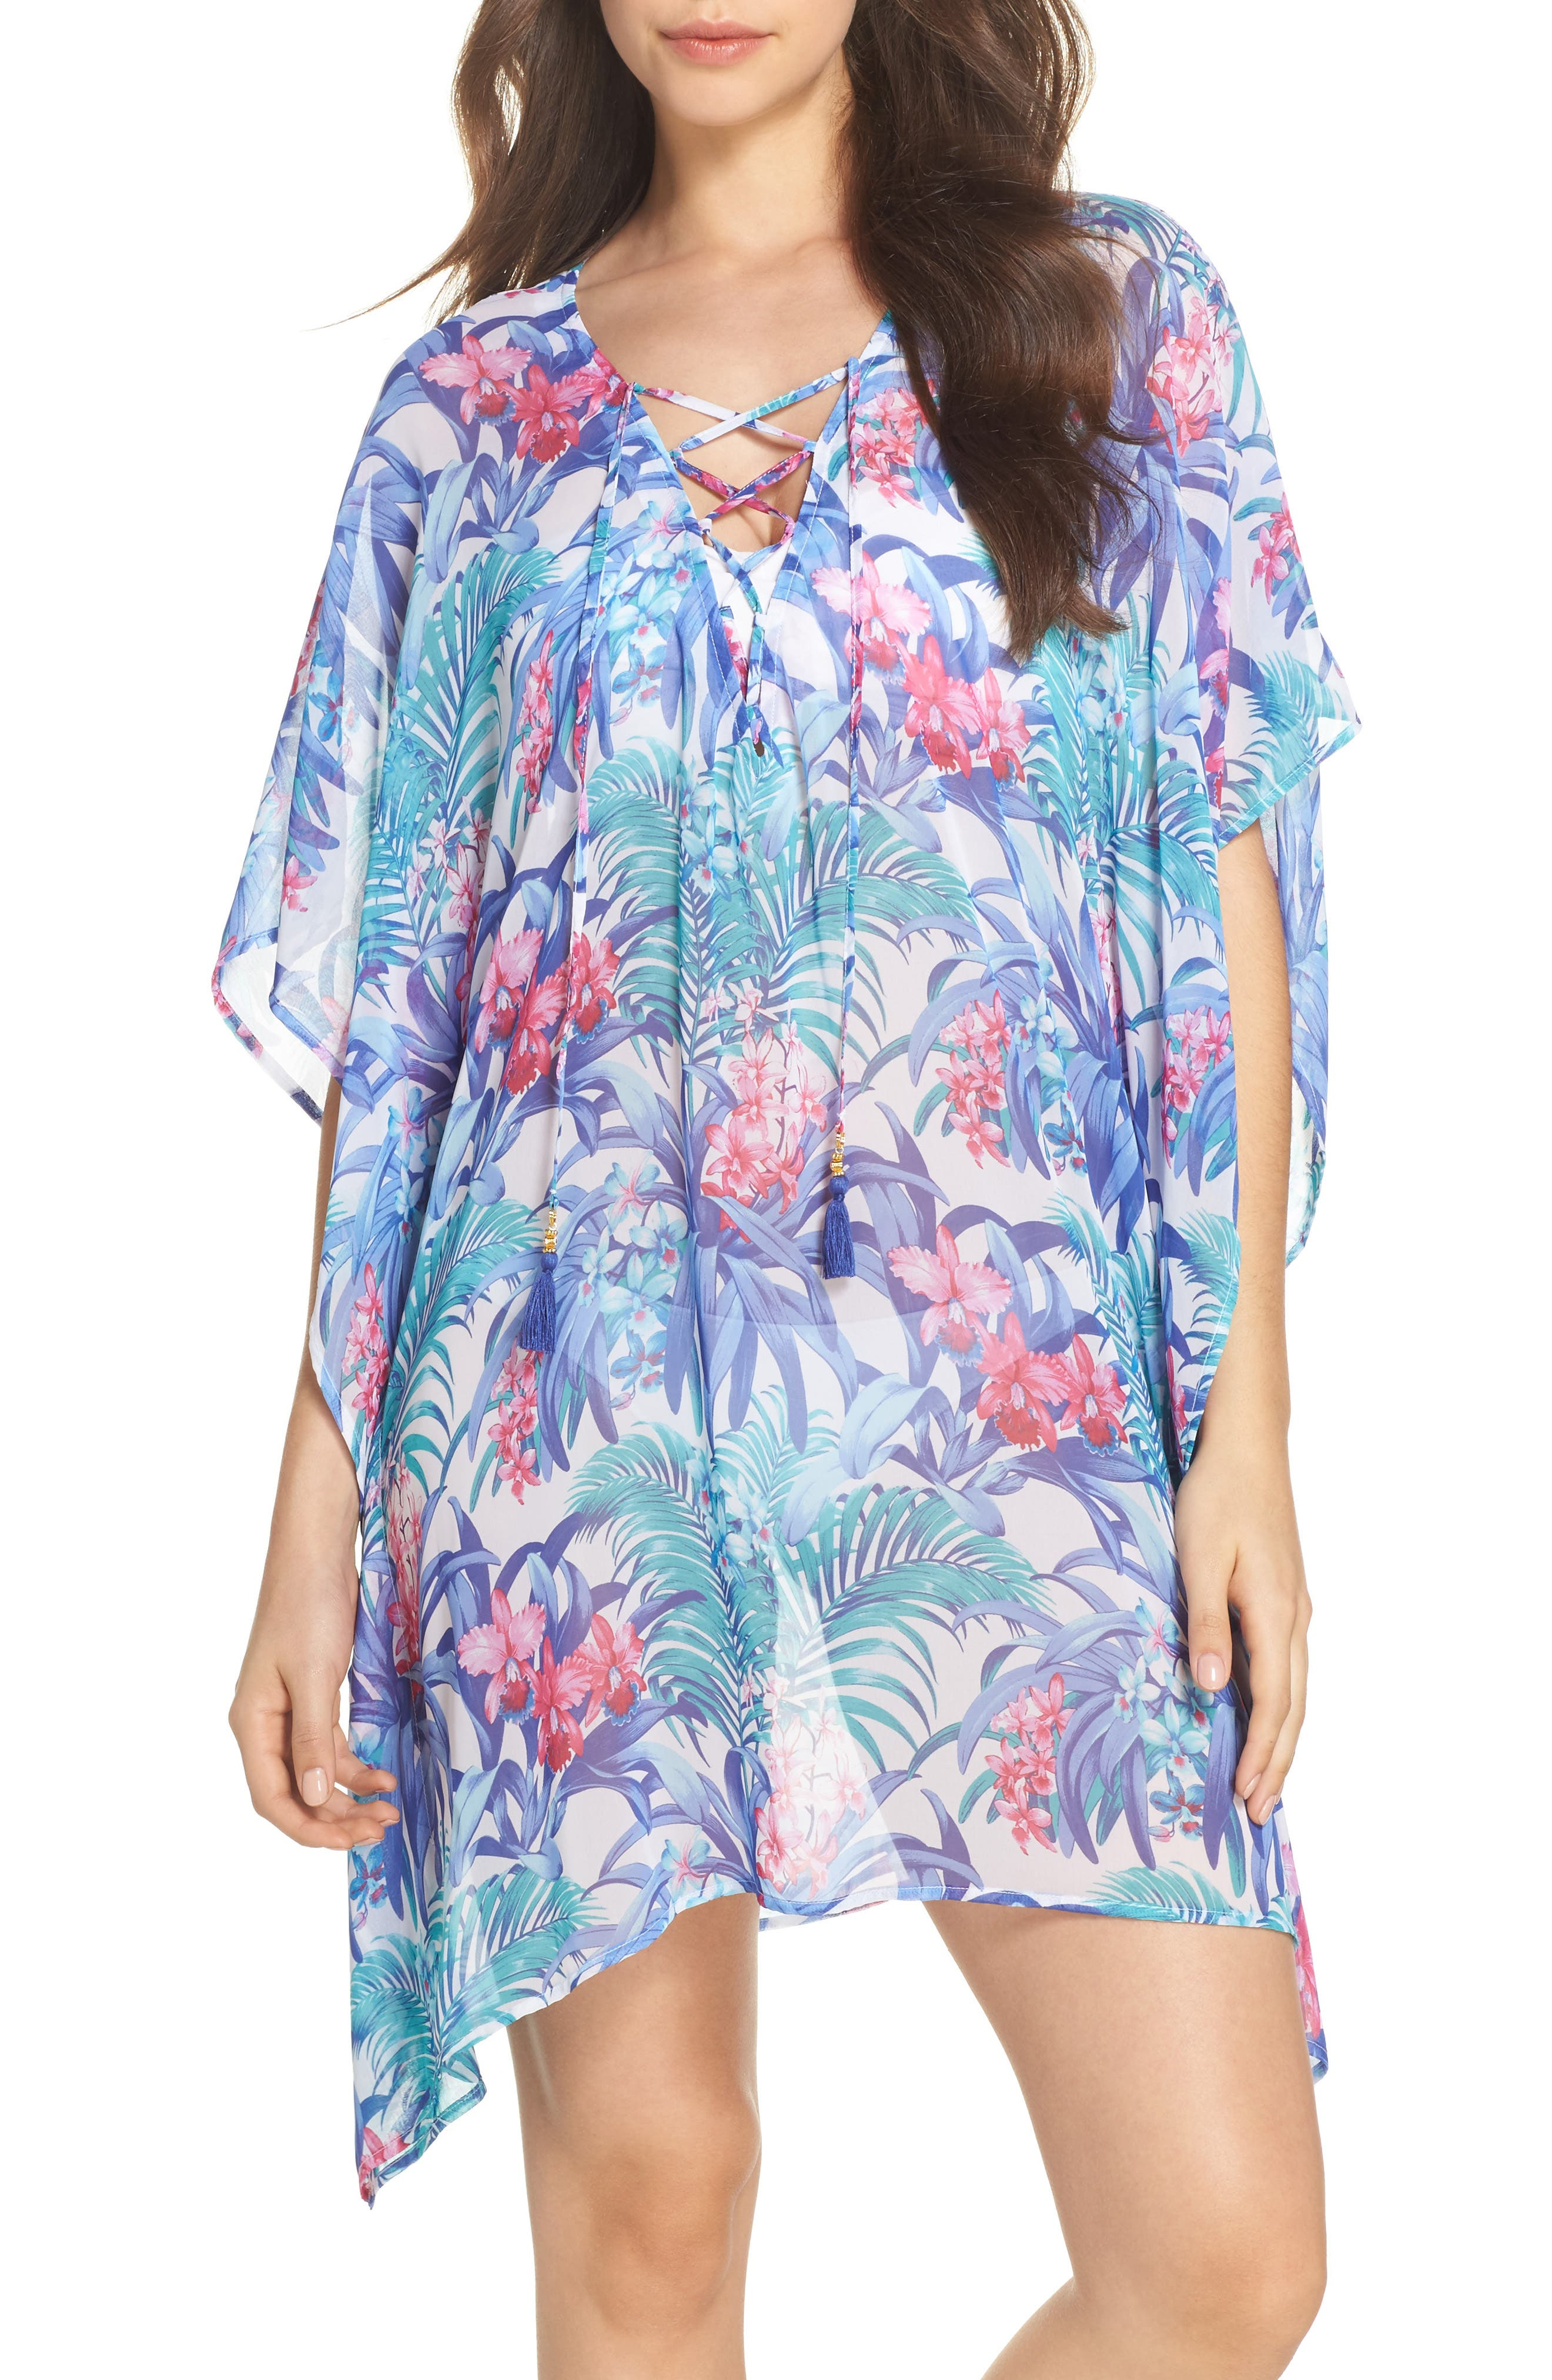 Majorelle Cover-Up Tunic,                             Main thumbnail 1, color,                             100